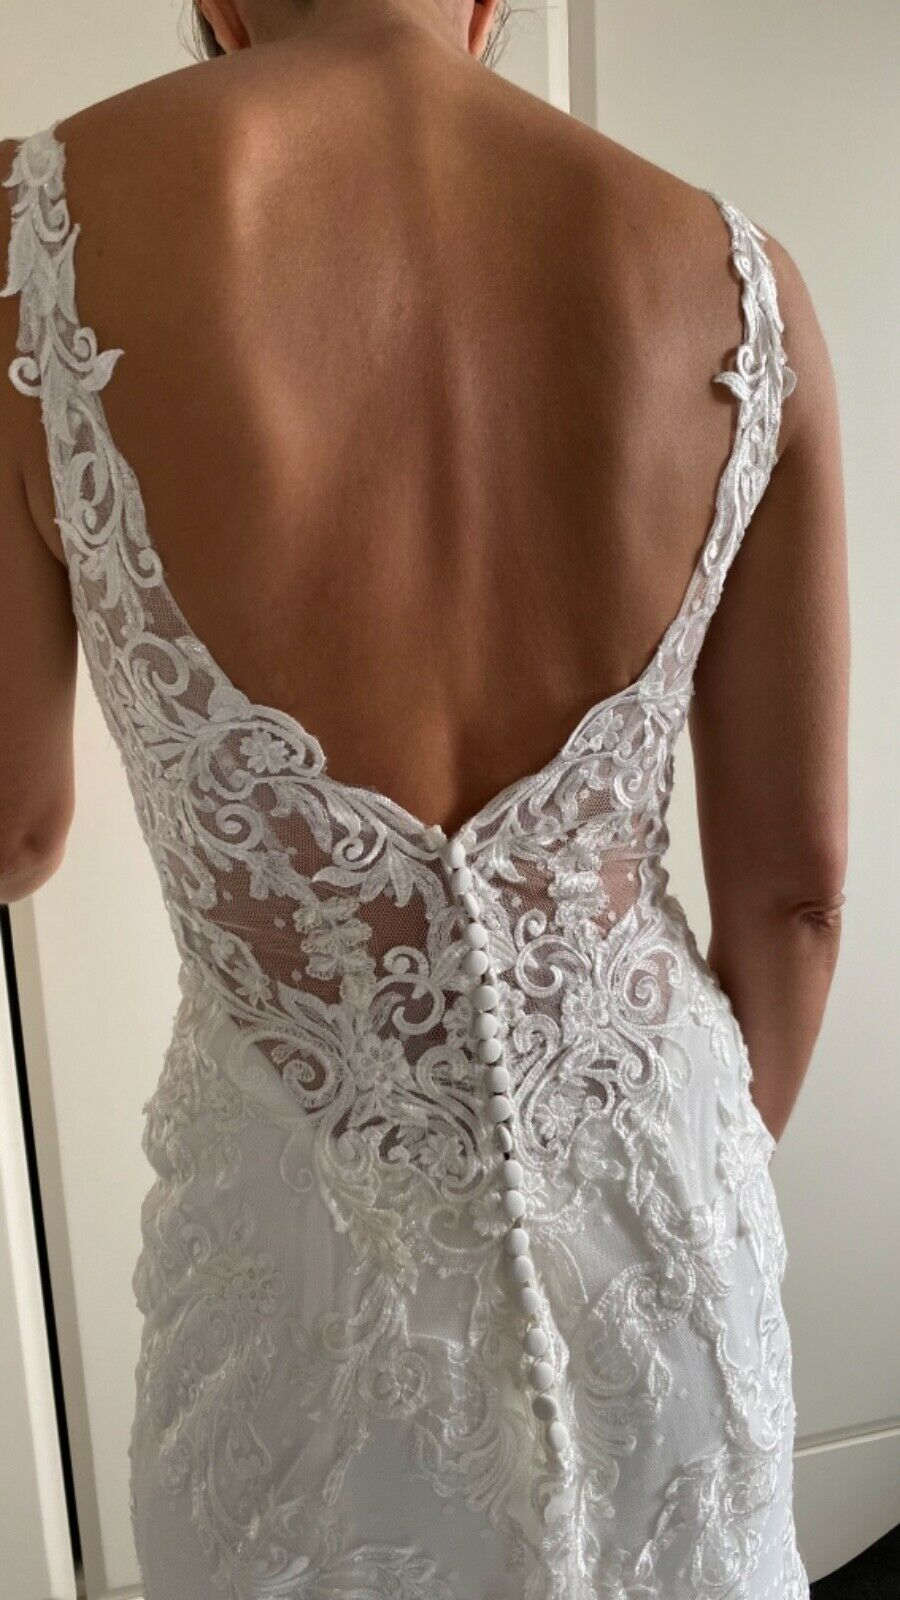 maggie sottero wedding dress size 8. Had Cups put in. Never worn, only tried on.